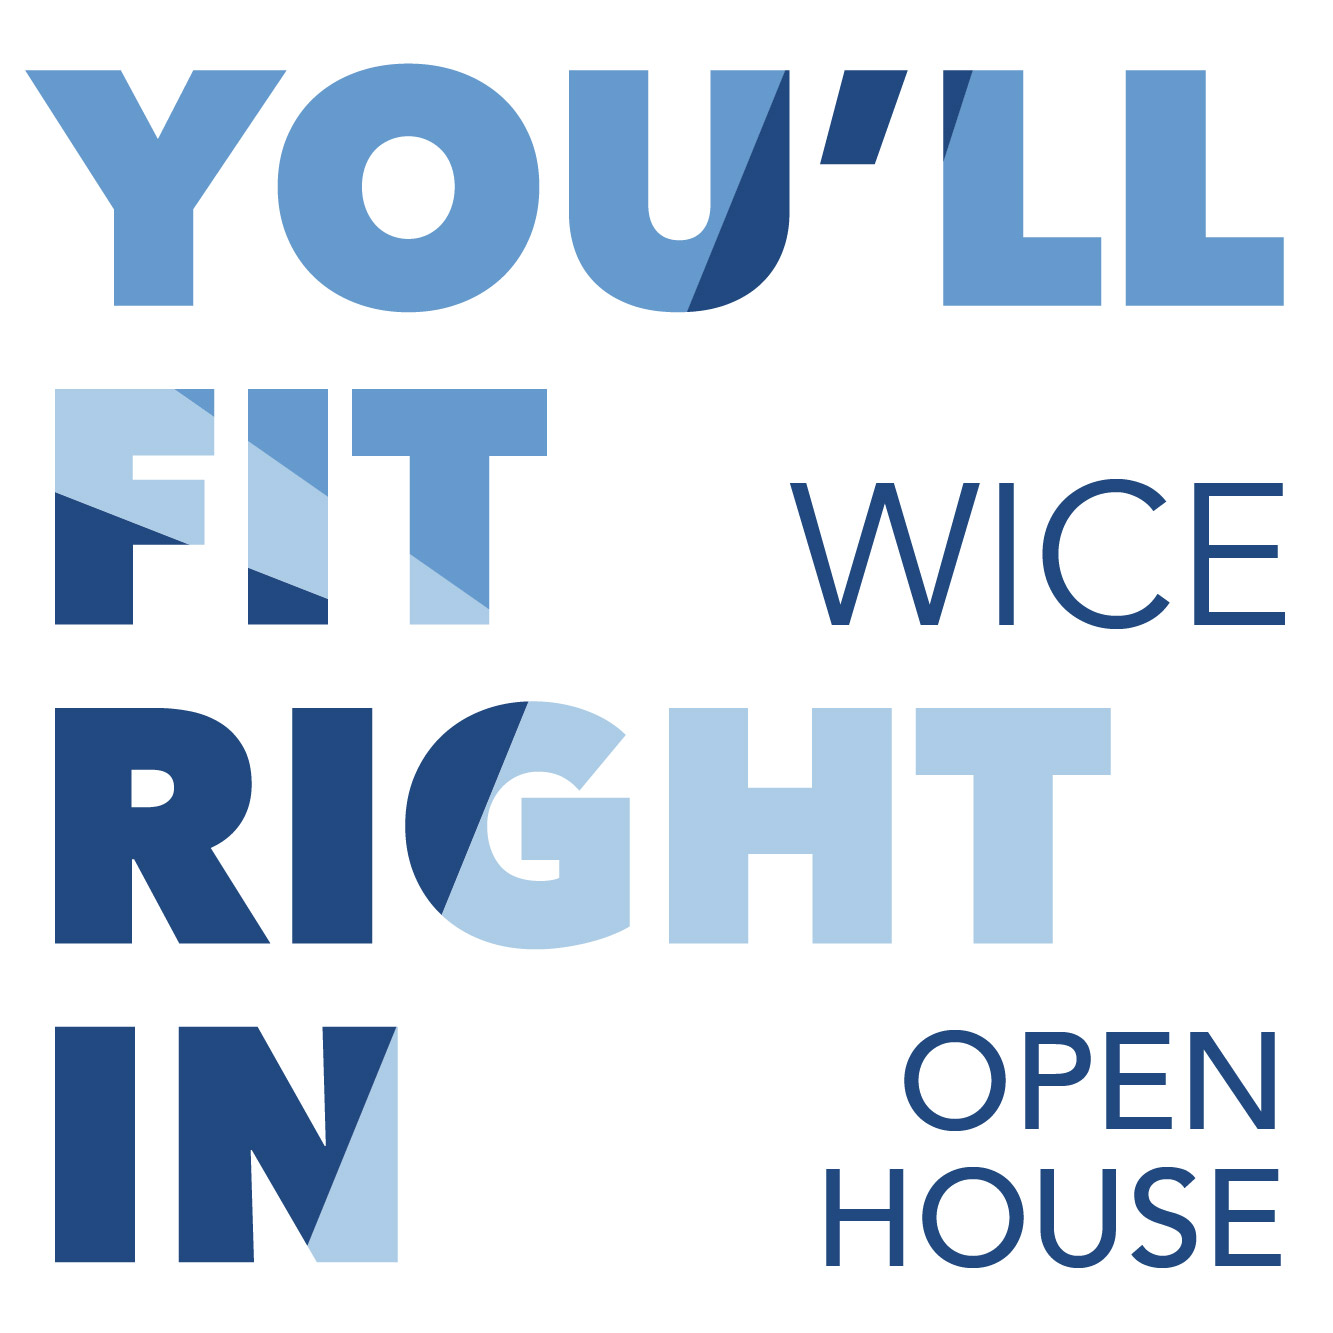 http://www.wice-paris.org/resources/Pictures/Events/OpenHouse2015image.jpg